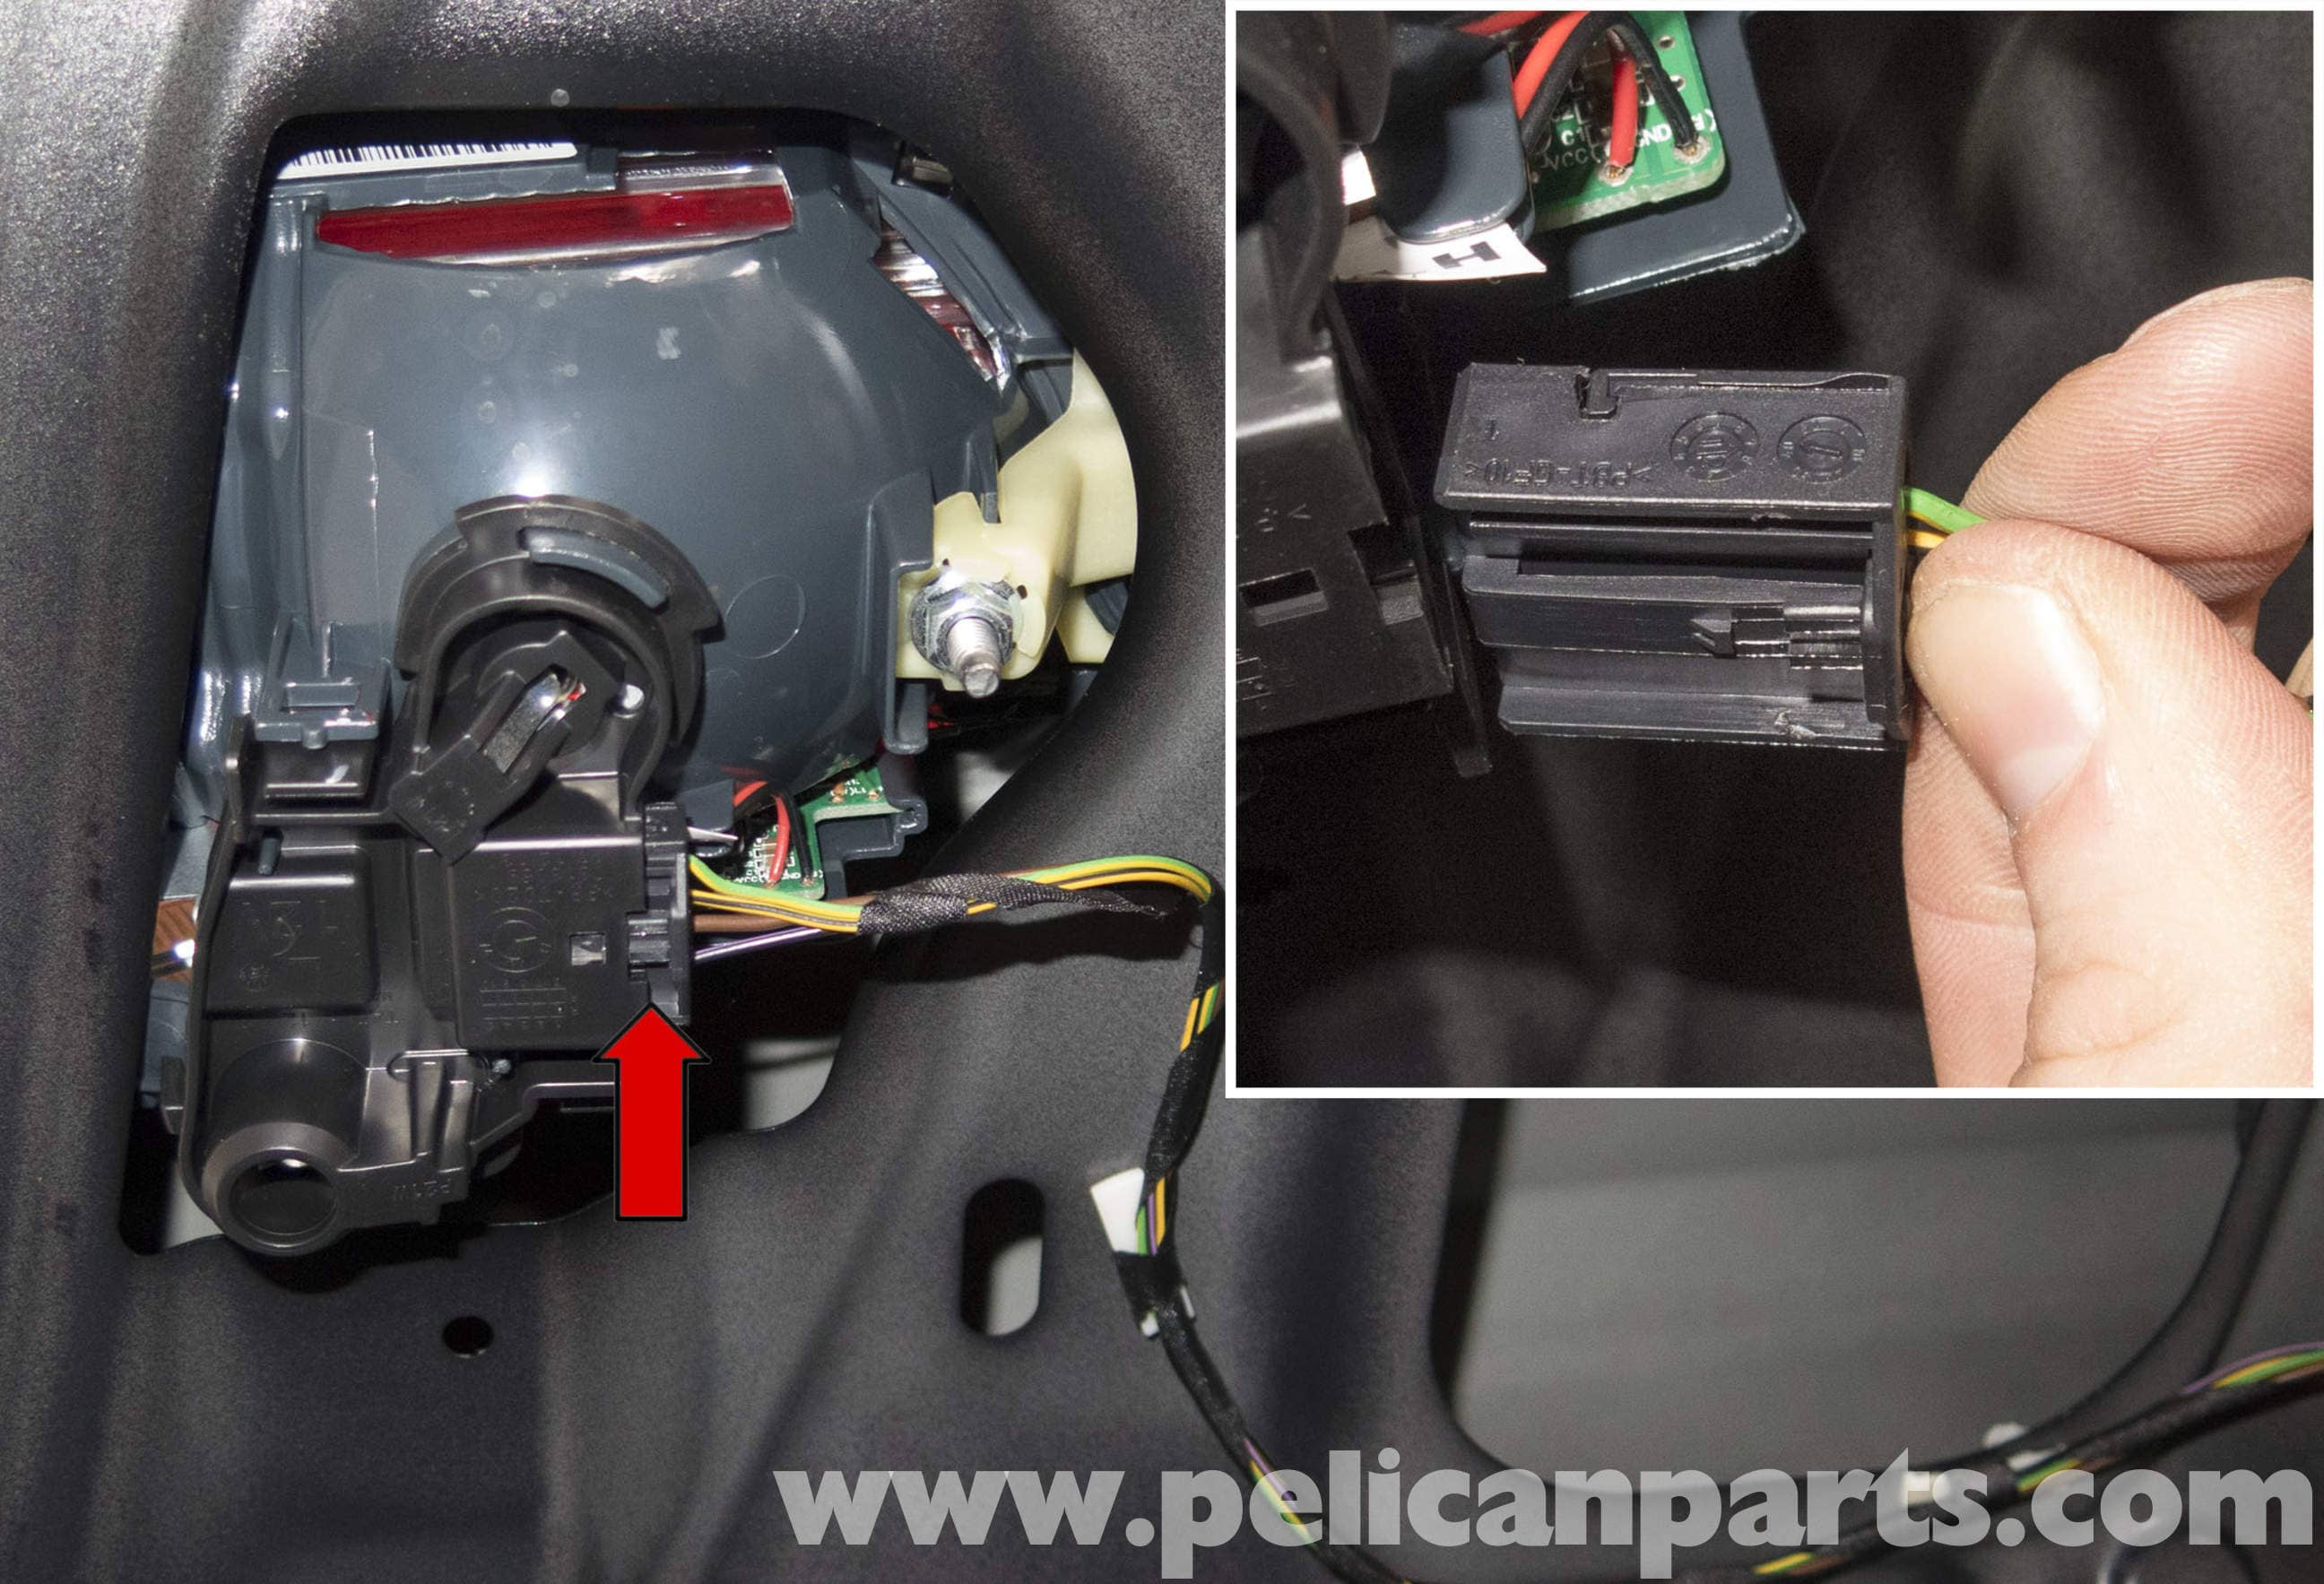 Remarkable Pelican Technical Article Bmw F30 3 Series Tail Light Replacement Wiring Digital Resources Zidurslowmaporg